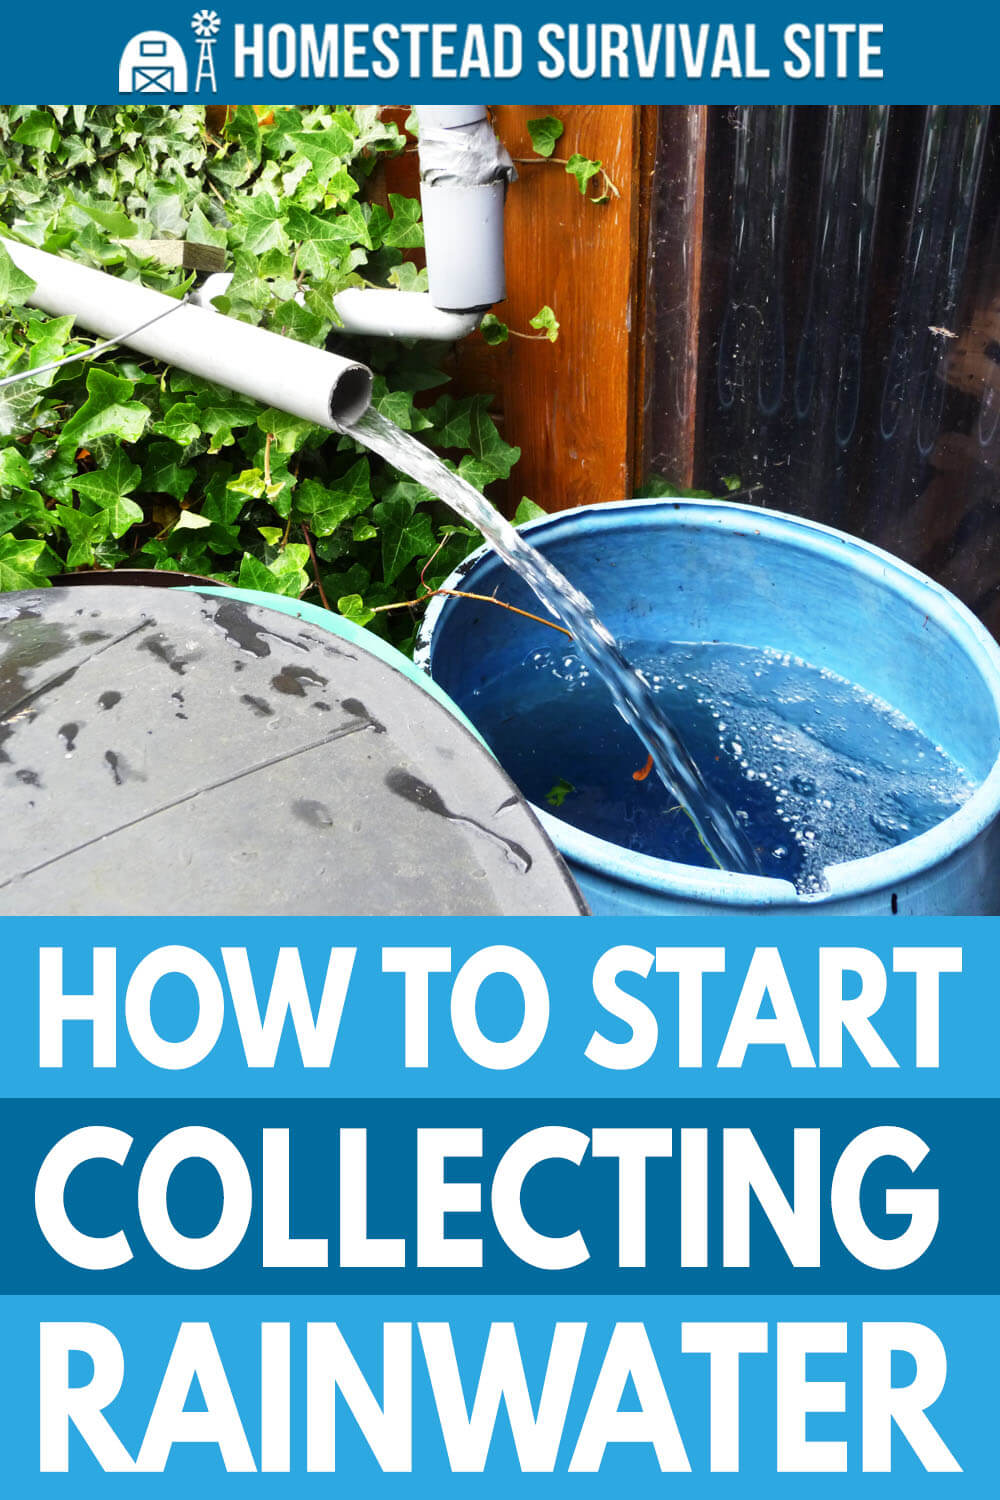 How to Start Collecting Rainwater